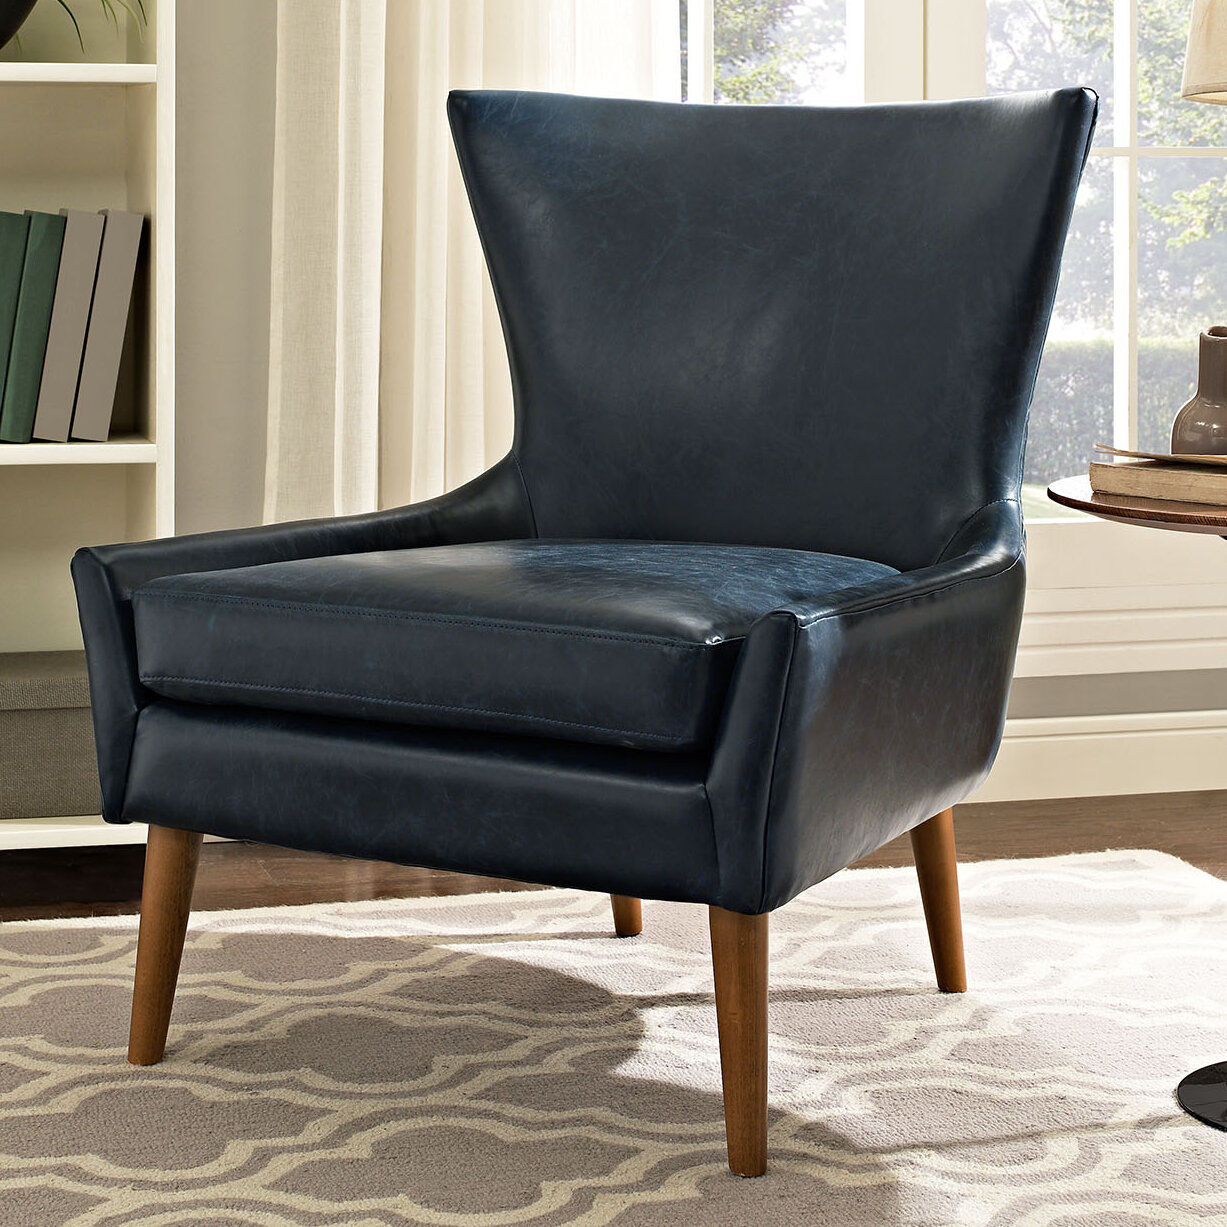 Faux Leather George Oliver Accent Chairs You'Ll Love In 2021 Throughout Marisa Faux Leather Wingback Chairs (View 15 of 15)